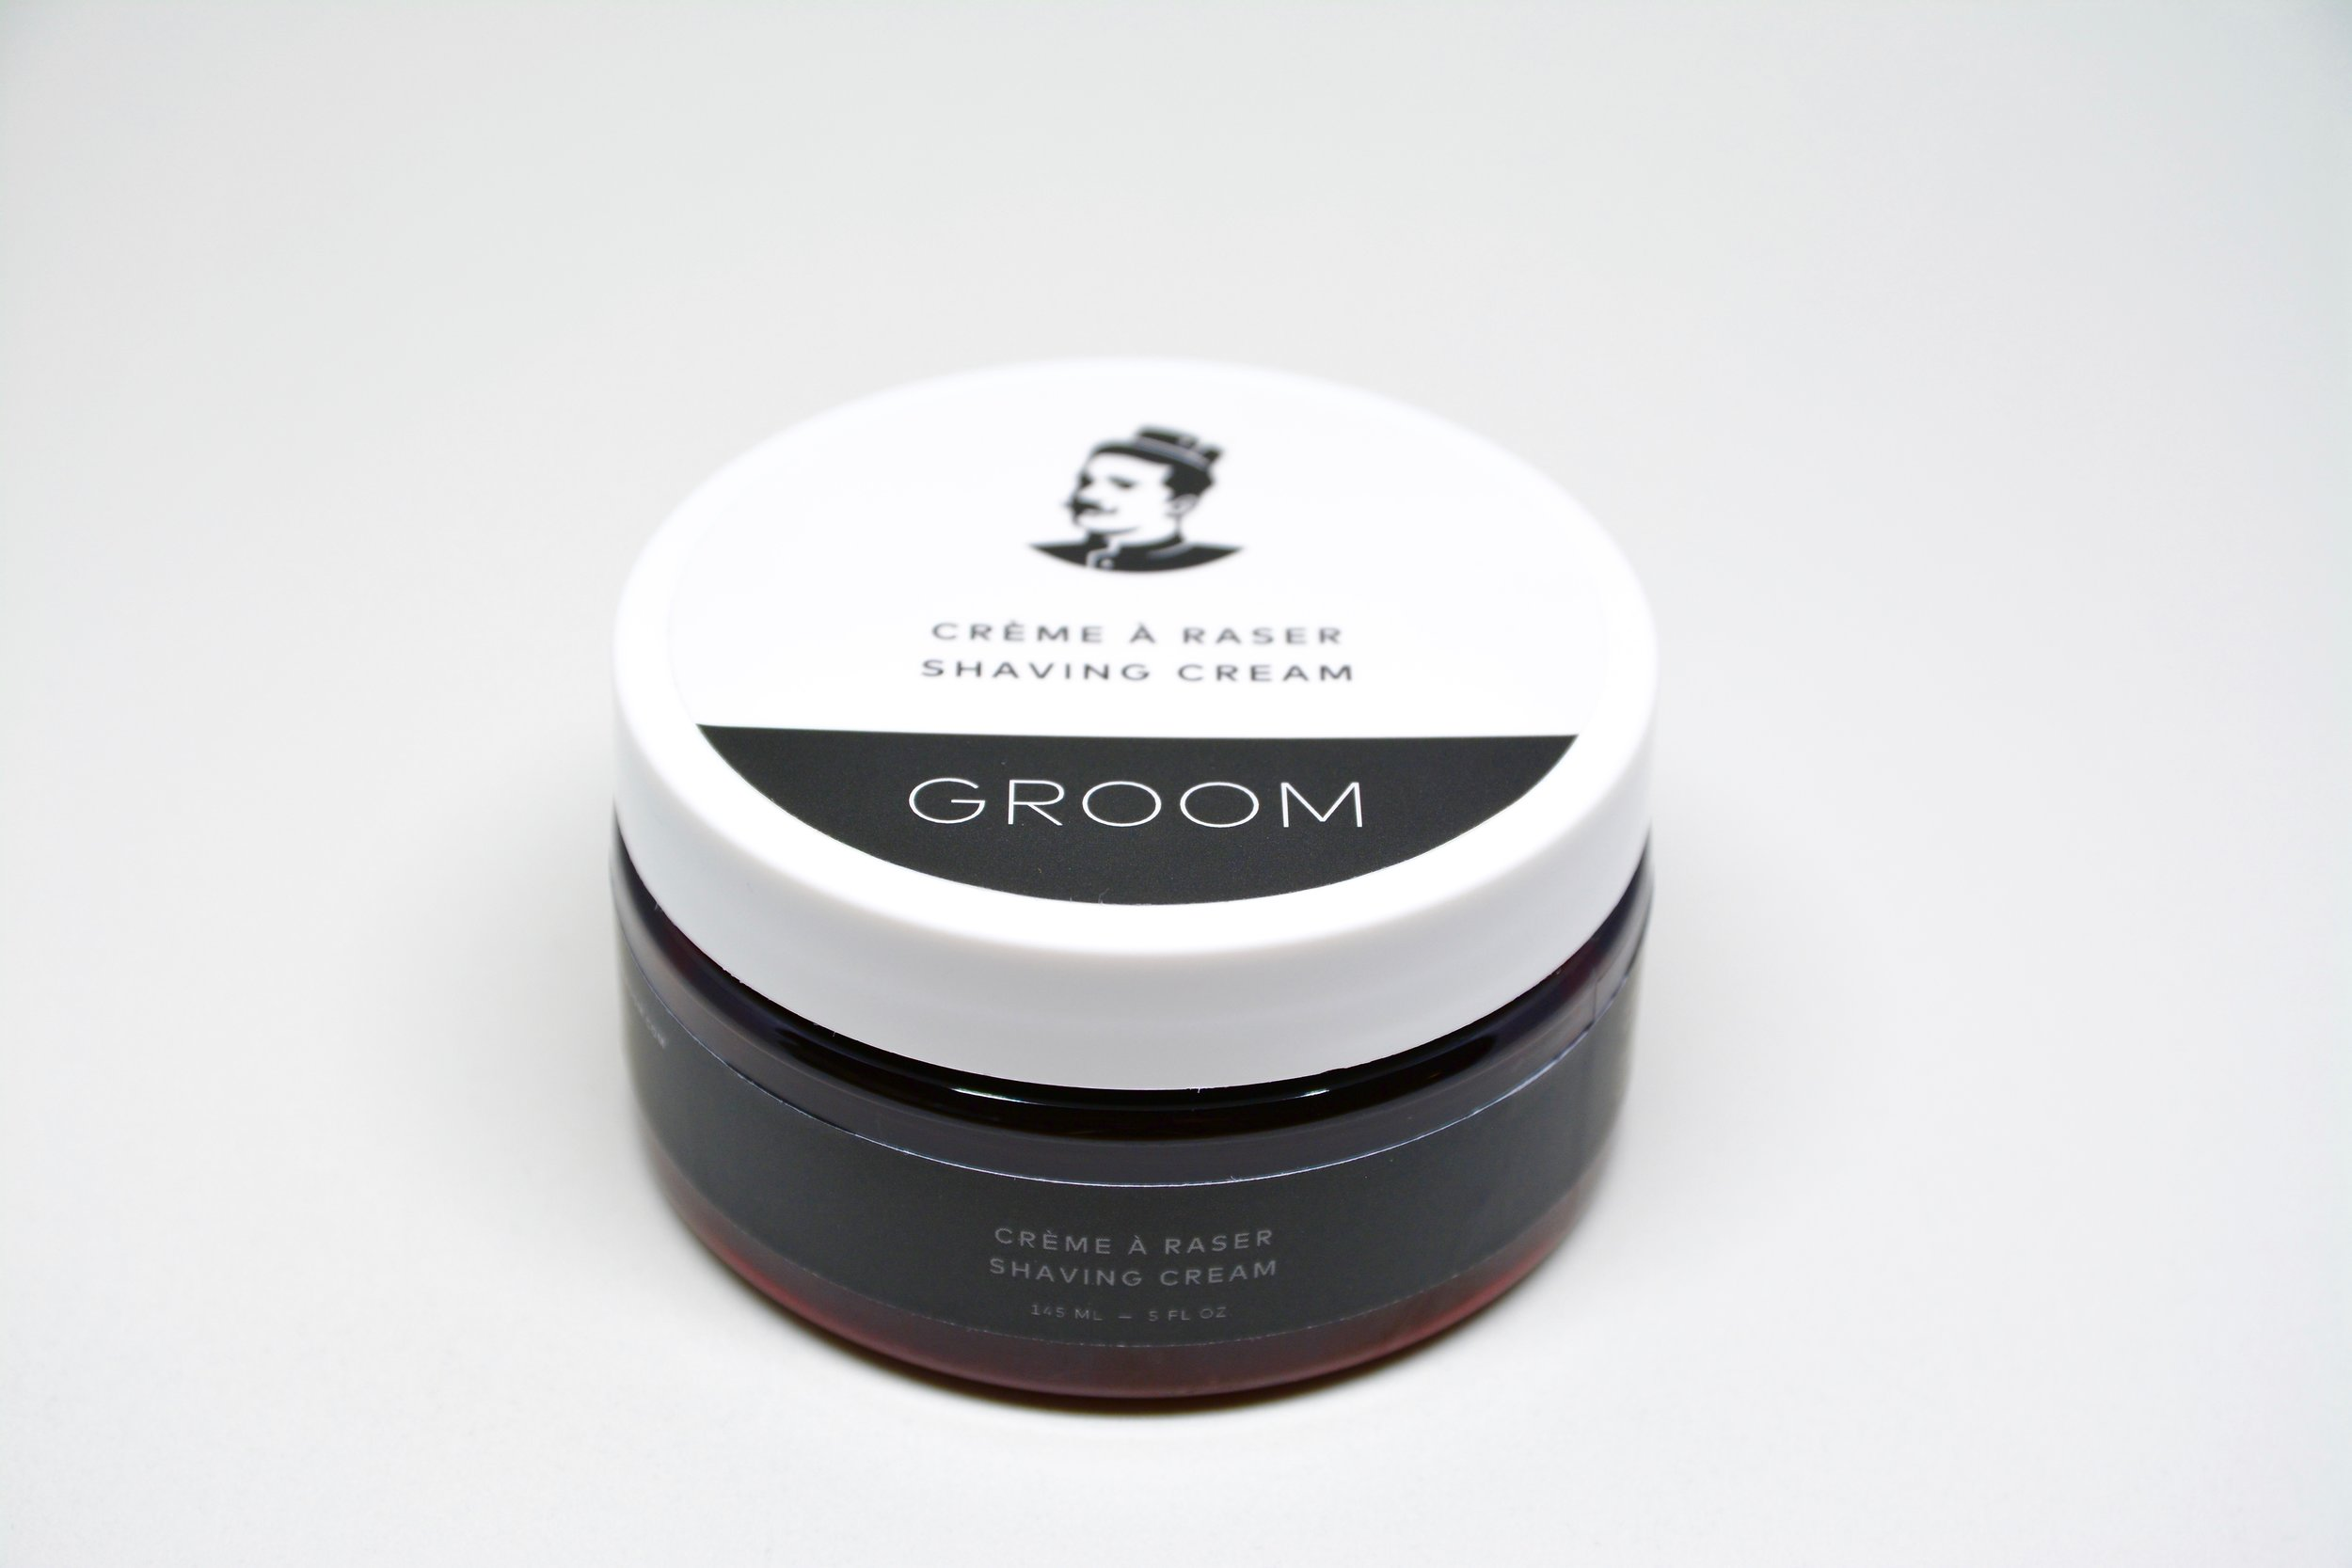 Shaving Cream, Les industries Groom,  $24. Available on  www.lesindustriesgroom.com  and select RW&CO stores across Canada. Consider this new line like the craft brewery of your grooming routine. Hand-made in Montreal with all-natural ingredients like cocoa butter and coconut oil, plus fresh subtle scents like clary sage and juniper - it's definitely one to watch. Use this shaving cream with a brush to get a super creamy lather and closer shave.